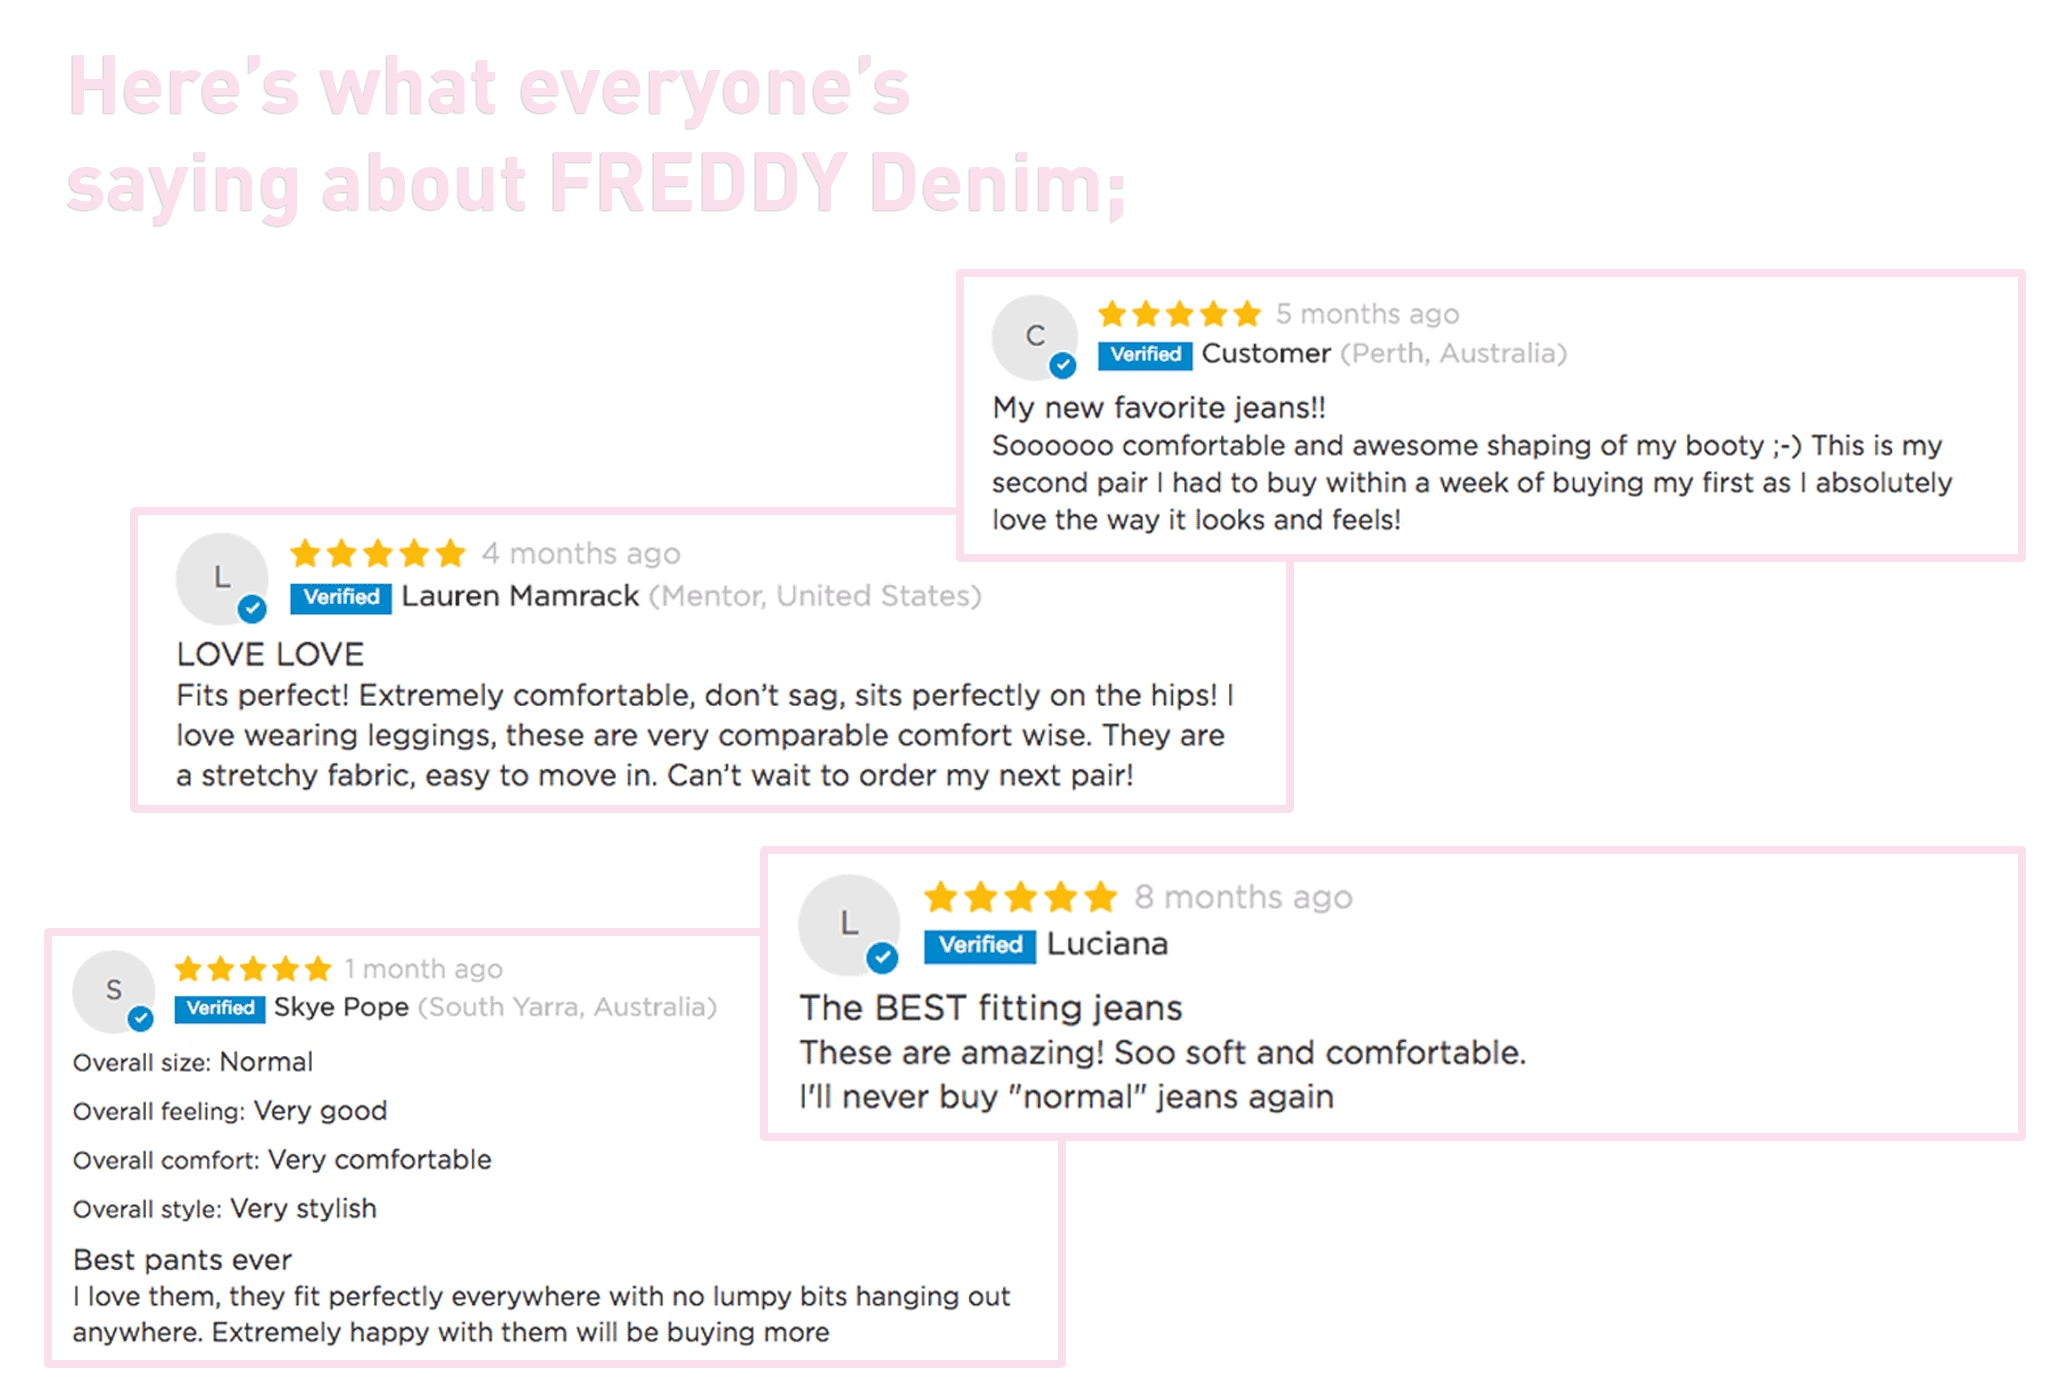 here's what everyone is saying about freddy's denim